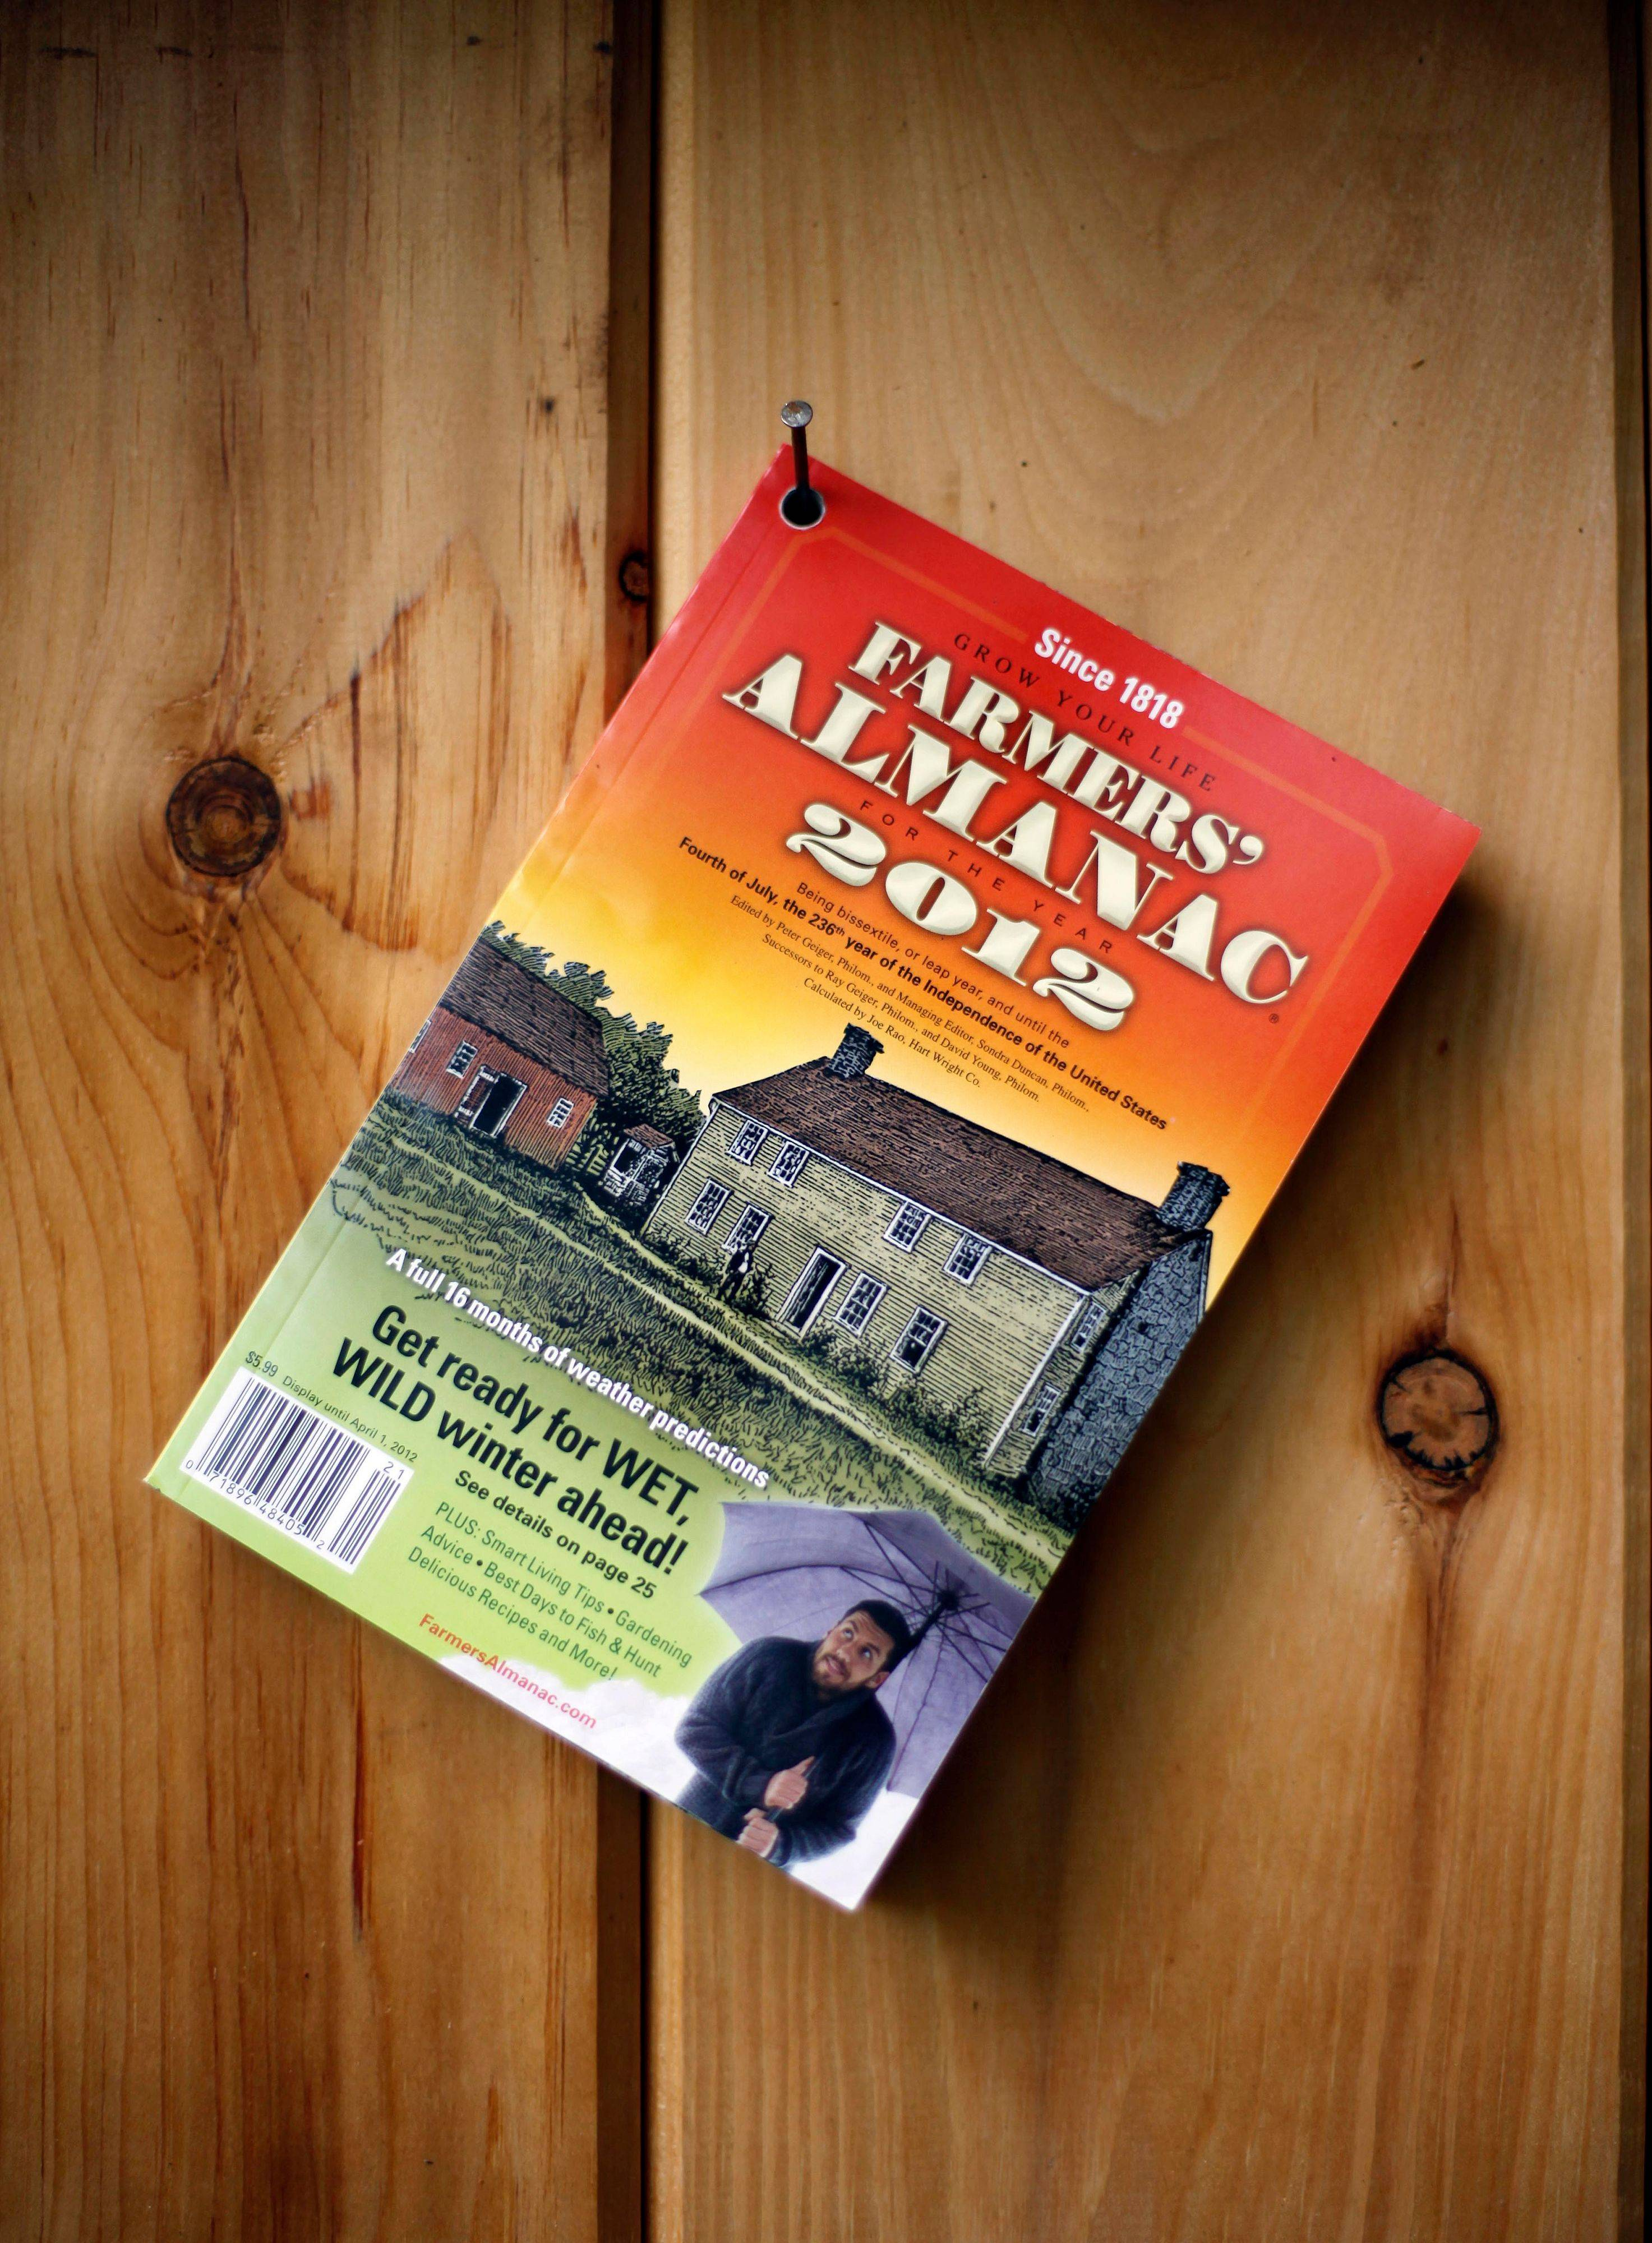 The Farmers� Almanac�s publishers still continue the tradition started in 1910 of pre-drilling holes in the corner for hanging on an outhouse hook.